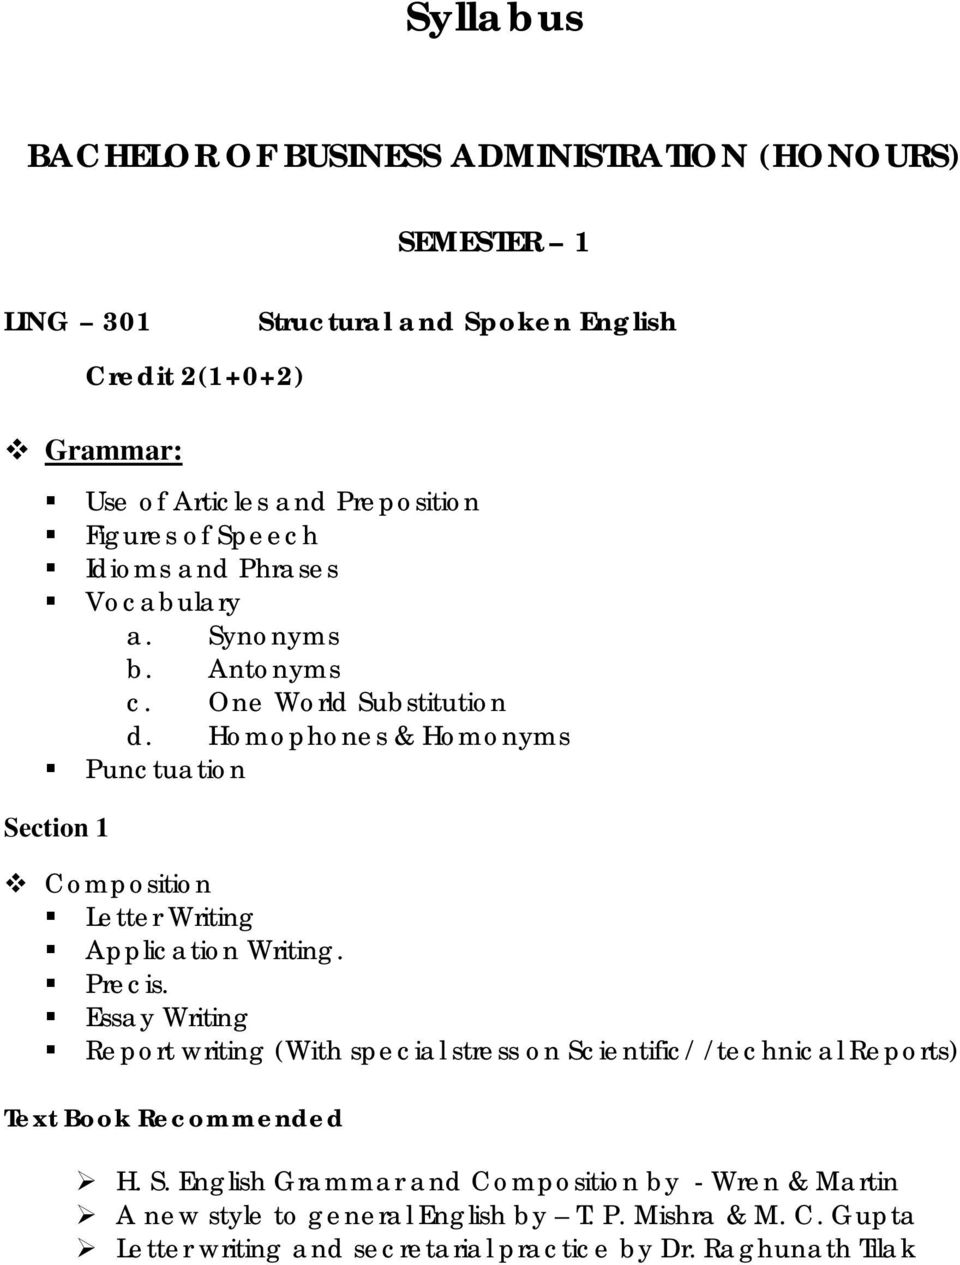 Homophones & Homonyms Punctuation Section 1 Composition Letter Writing Application Writing. Precis.